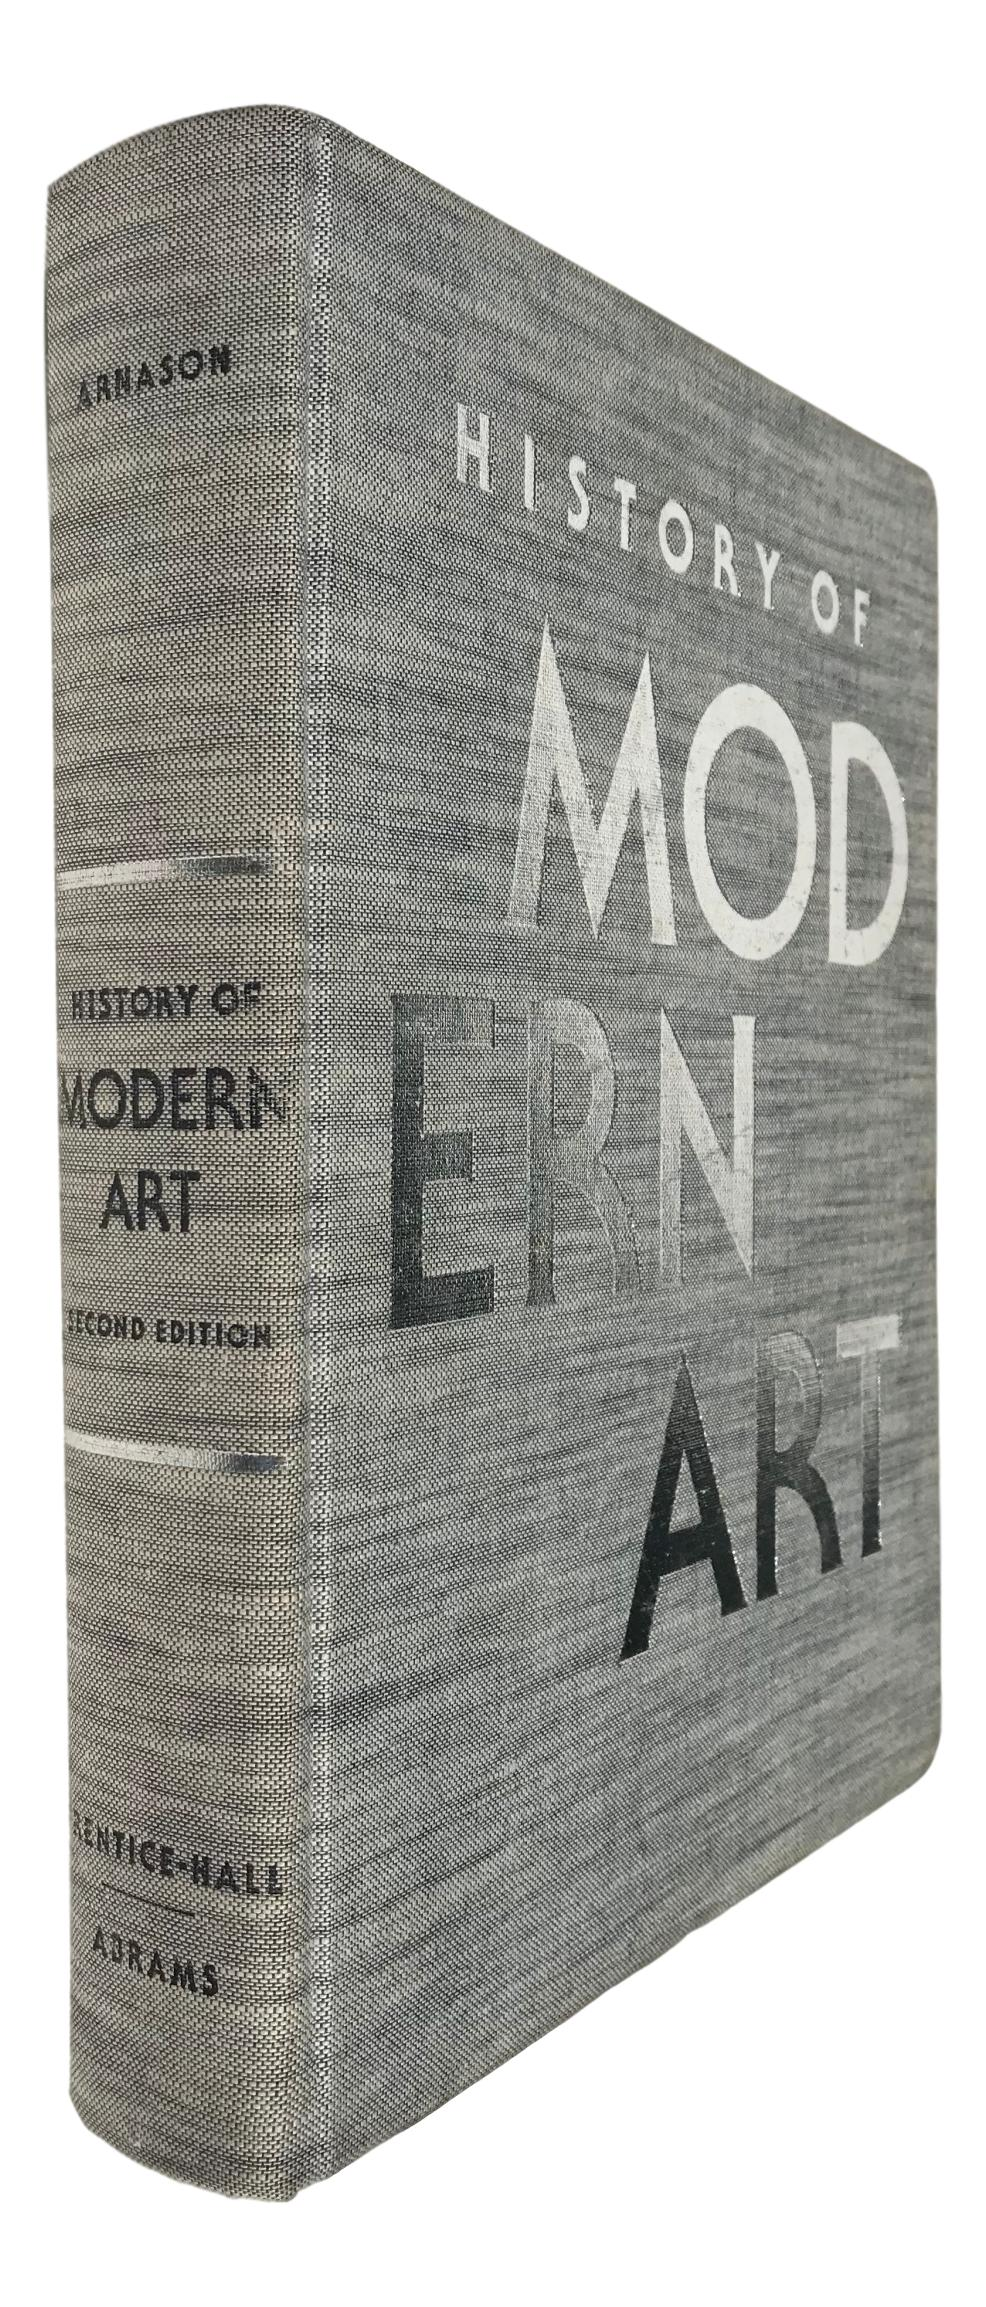 Vintage History of Modern Art Oversized Coffee Table Book HEATHERTIQUE